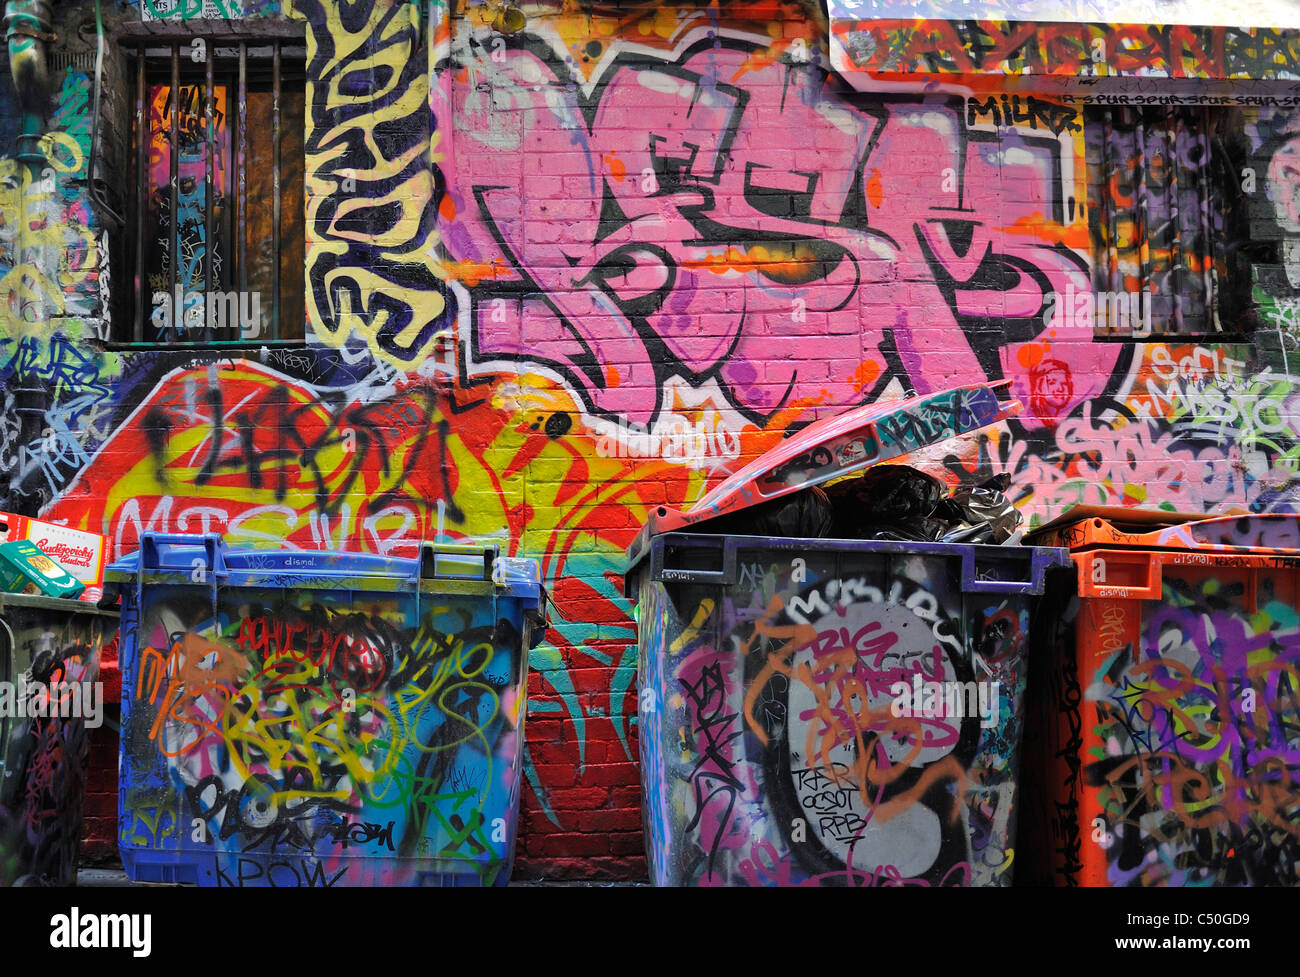 L'art du graffiti à Melbourne Central Business District Photo Stock